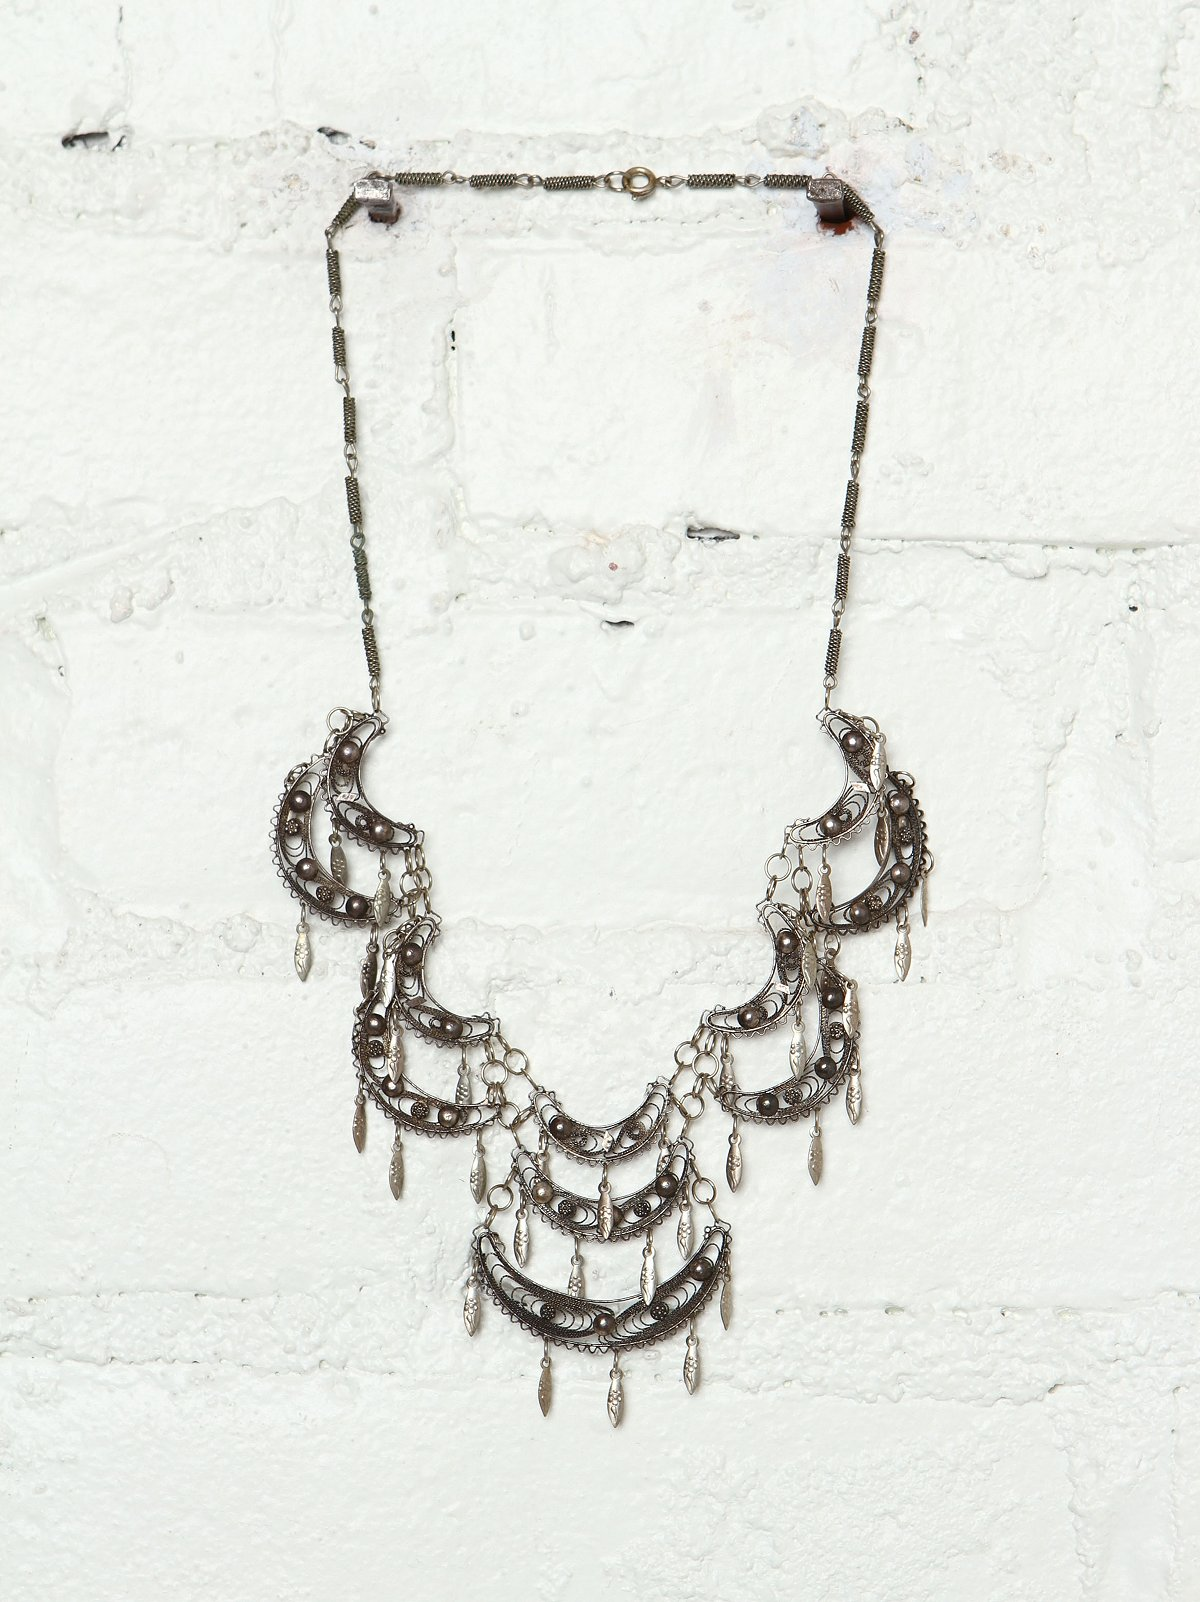 Vintage Tiered Metal Necklace